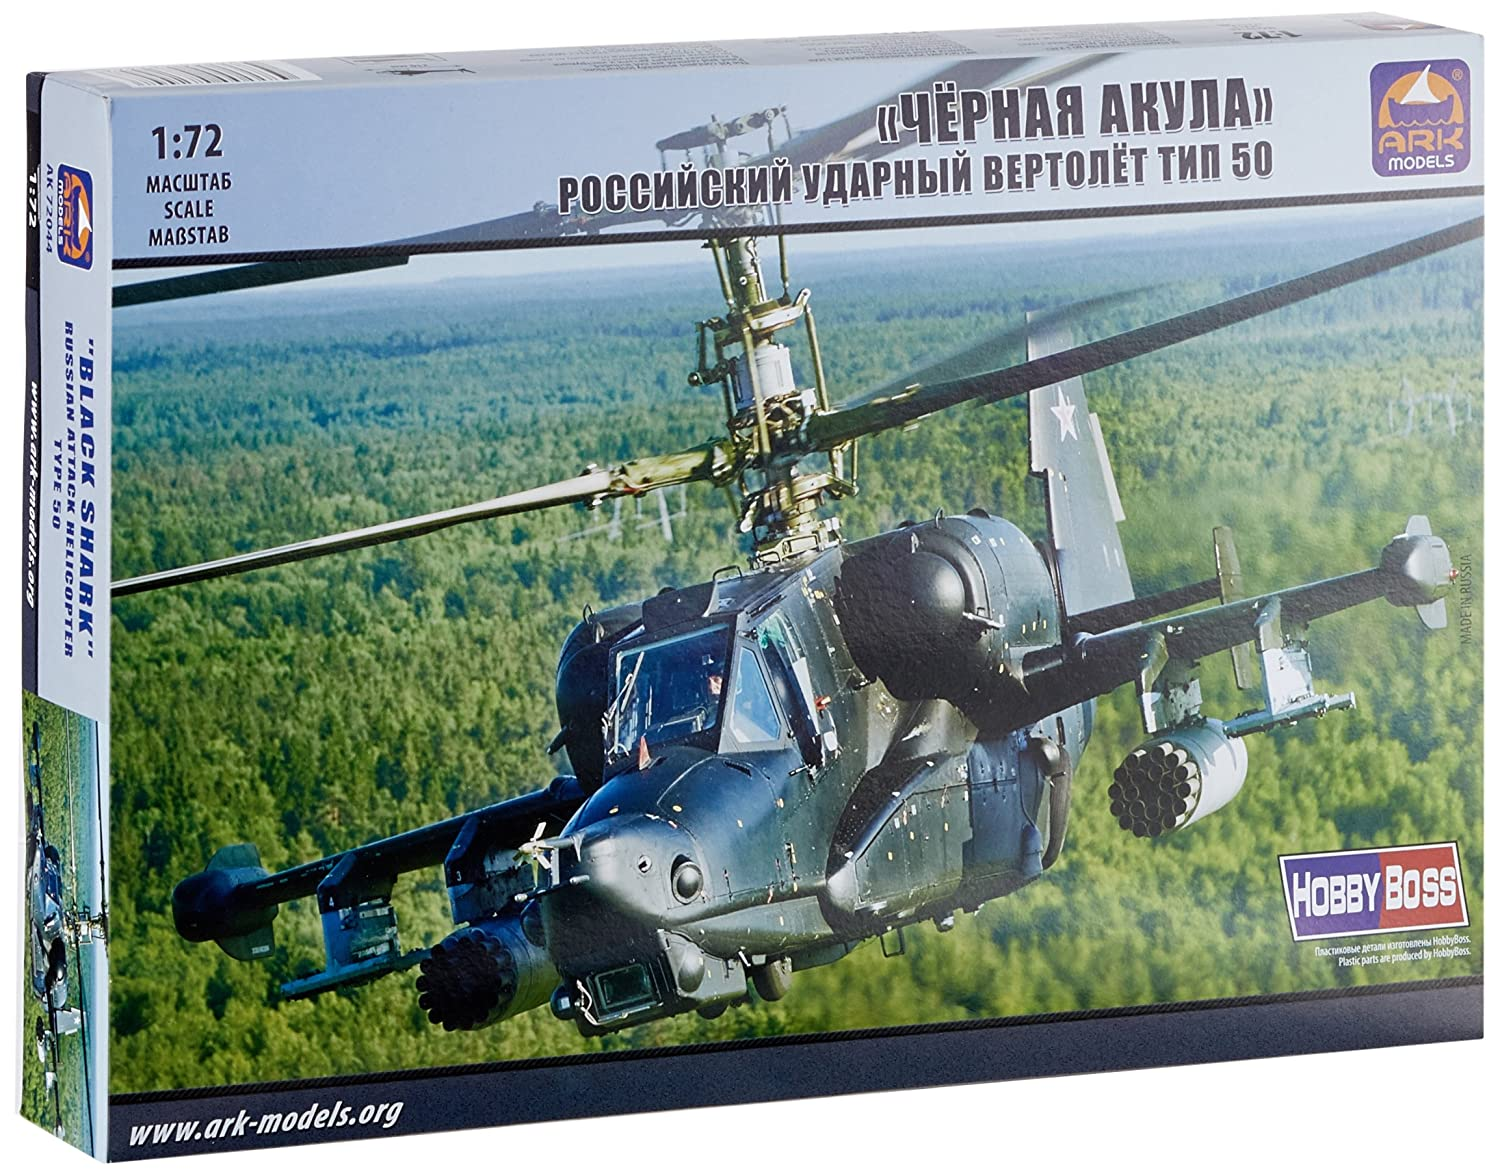 Ark models AK72044 Kamov ka-50 nero Shark Russian Attack Helicopter Plastic Model